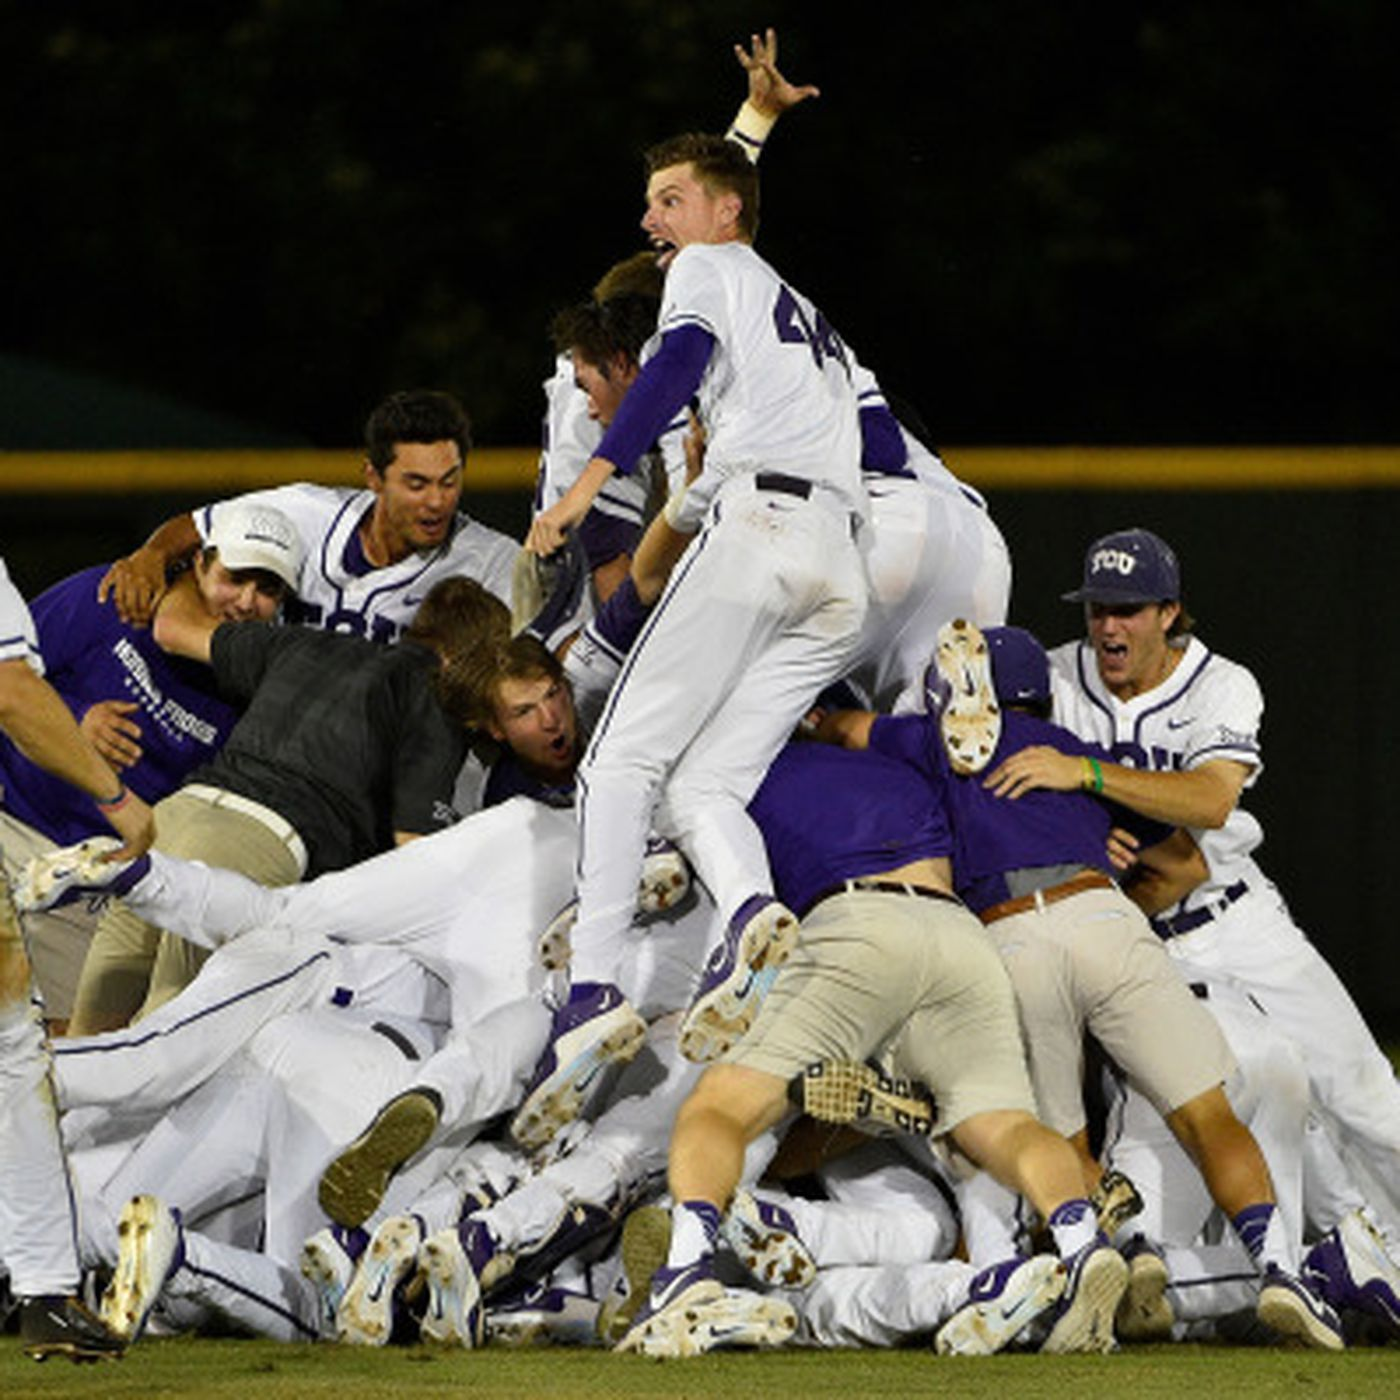 WATCH: What's it like to be in the dogpile? - Frogs O' War